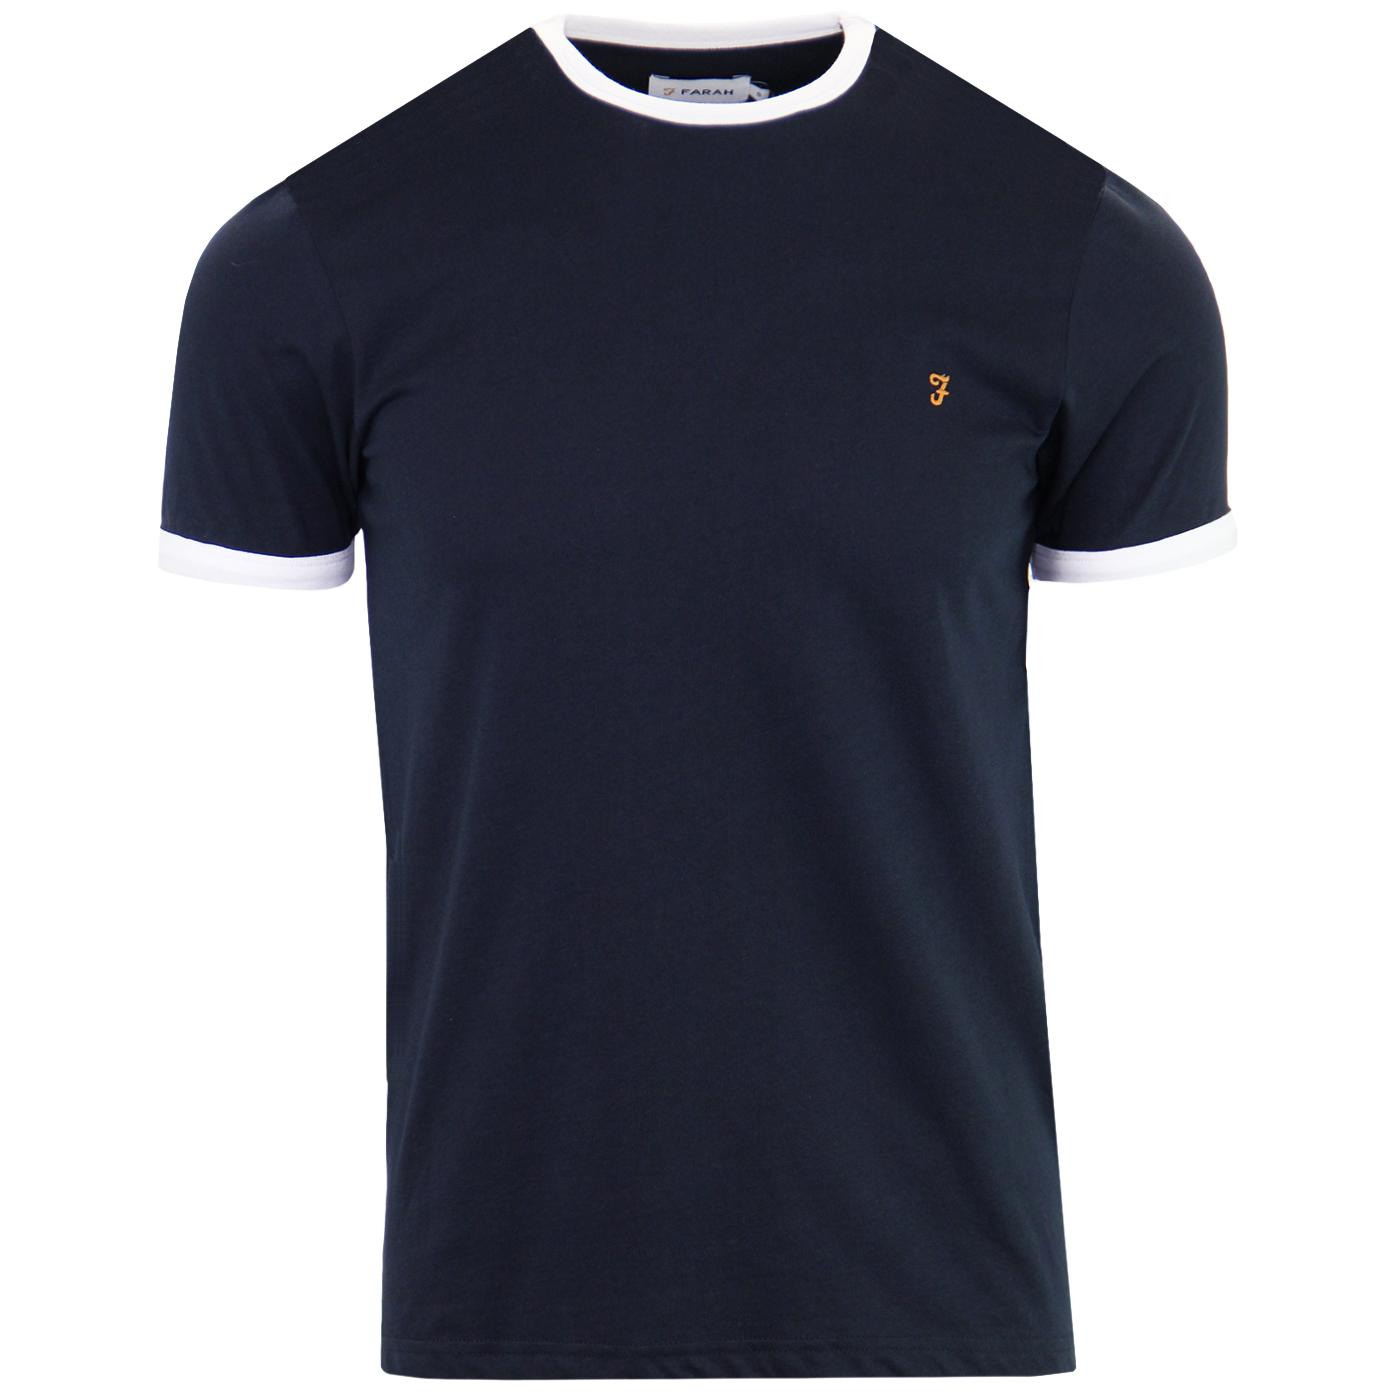 Groves FARAH Mens Retro Mod Ringer Tee (True Navy)